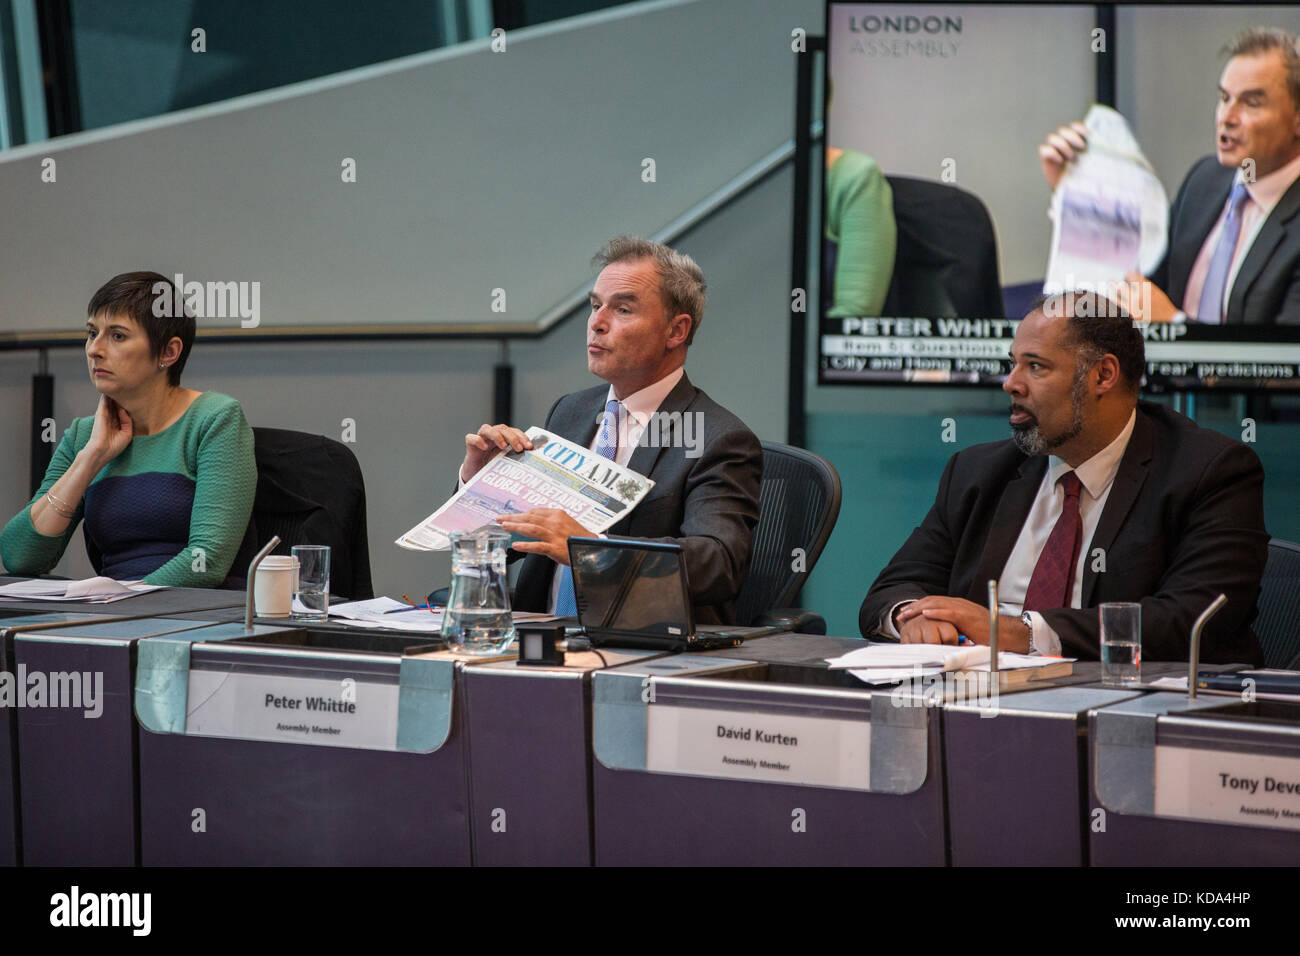 London, UK. 12th Oct, 2017. Peter Whittle, UKIP London Assembly Member, puts a question regarding Brexit to Mayor - Stock Image